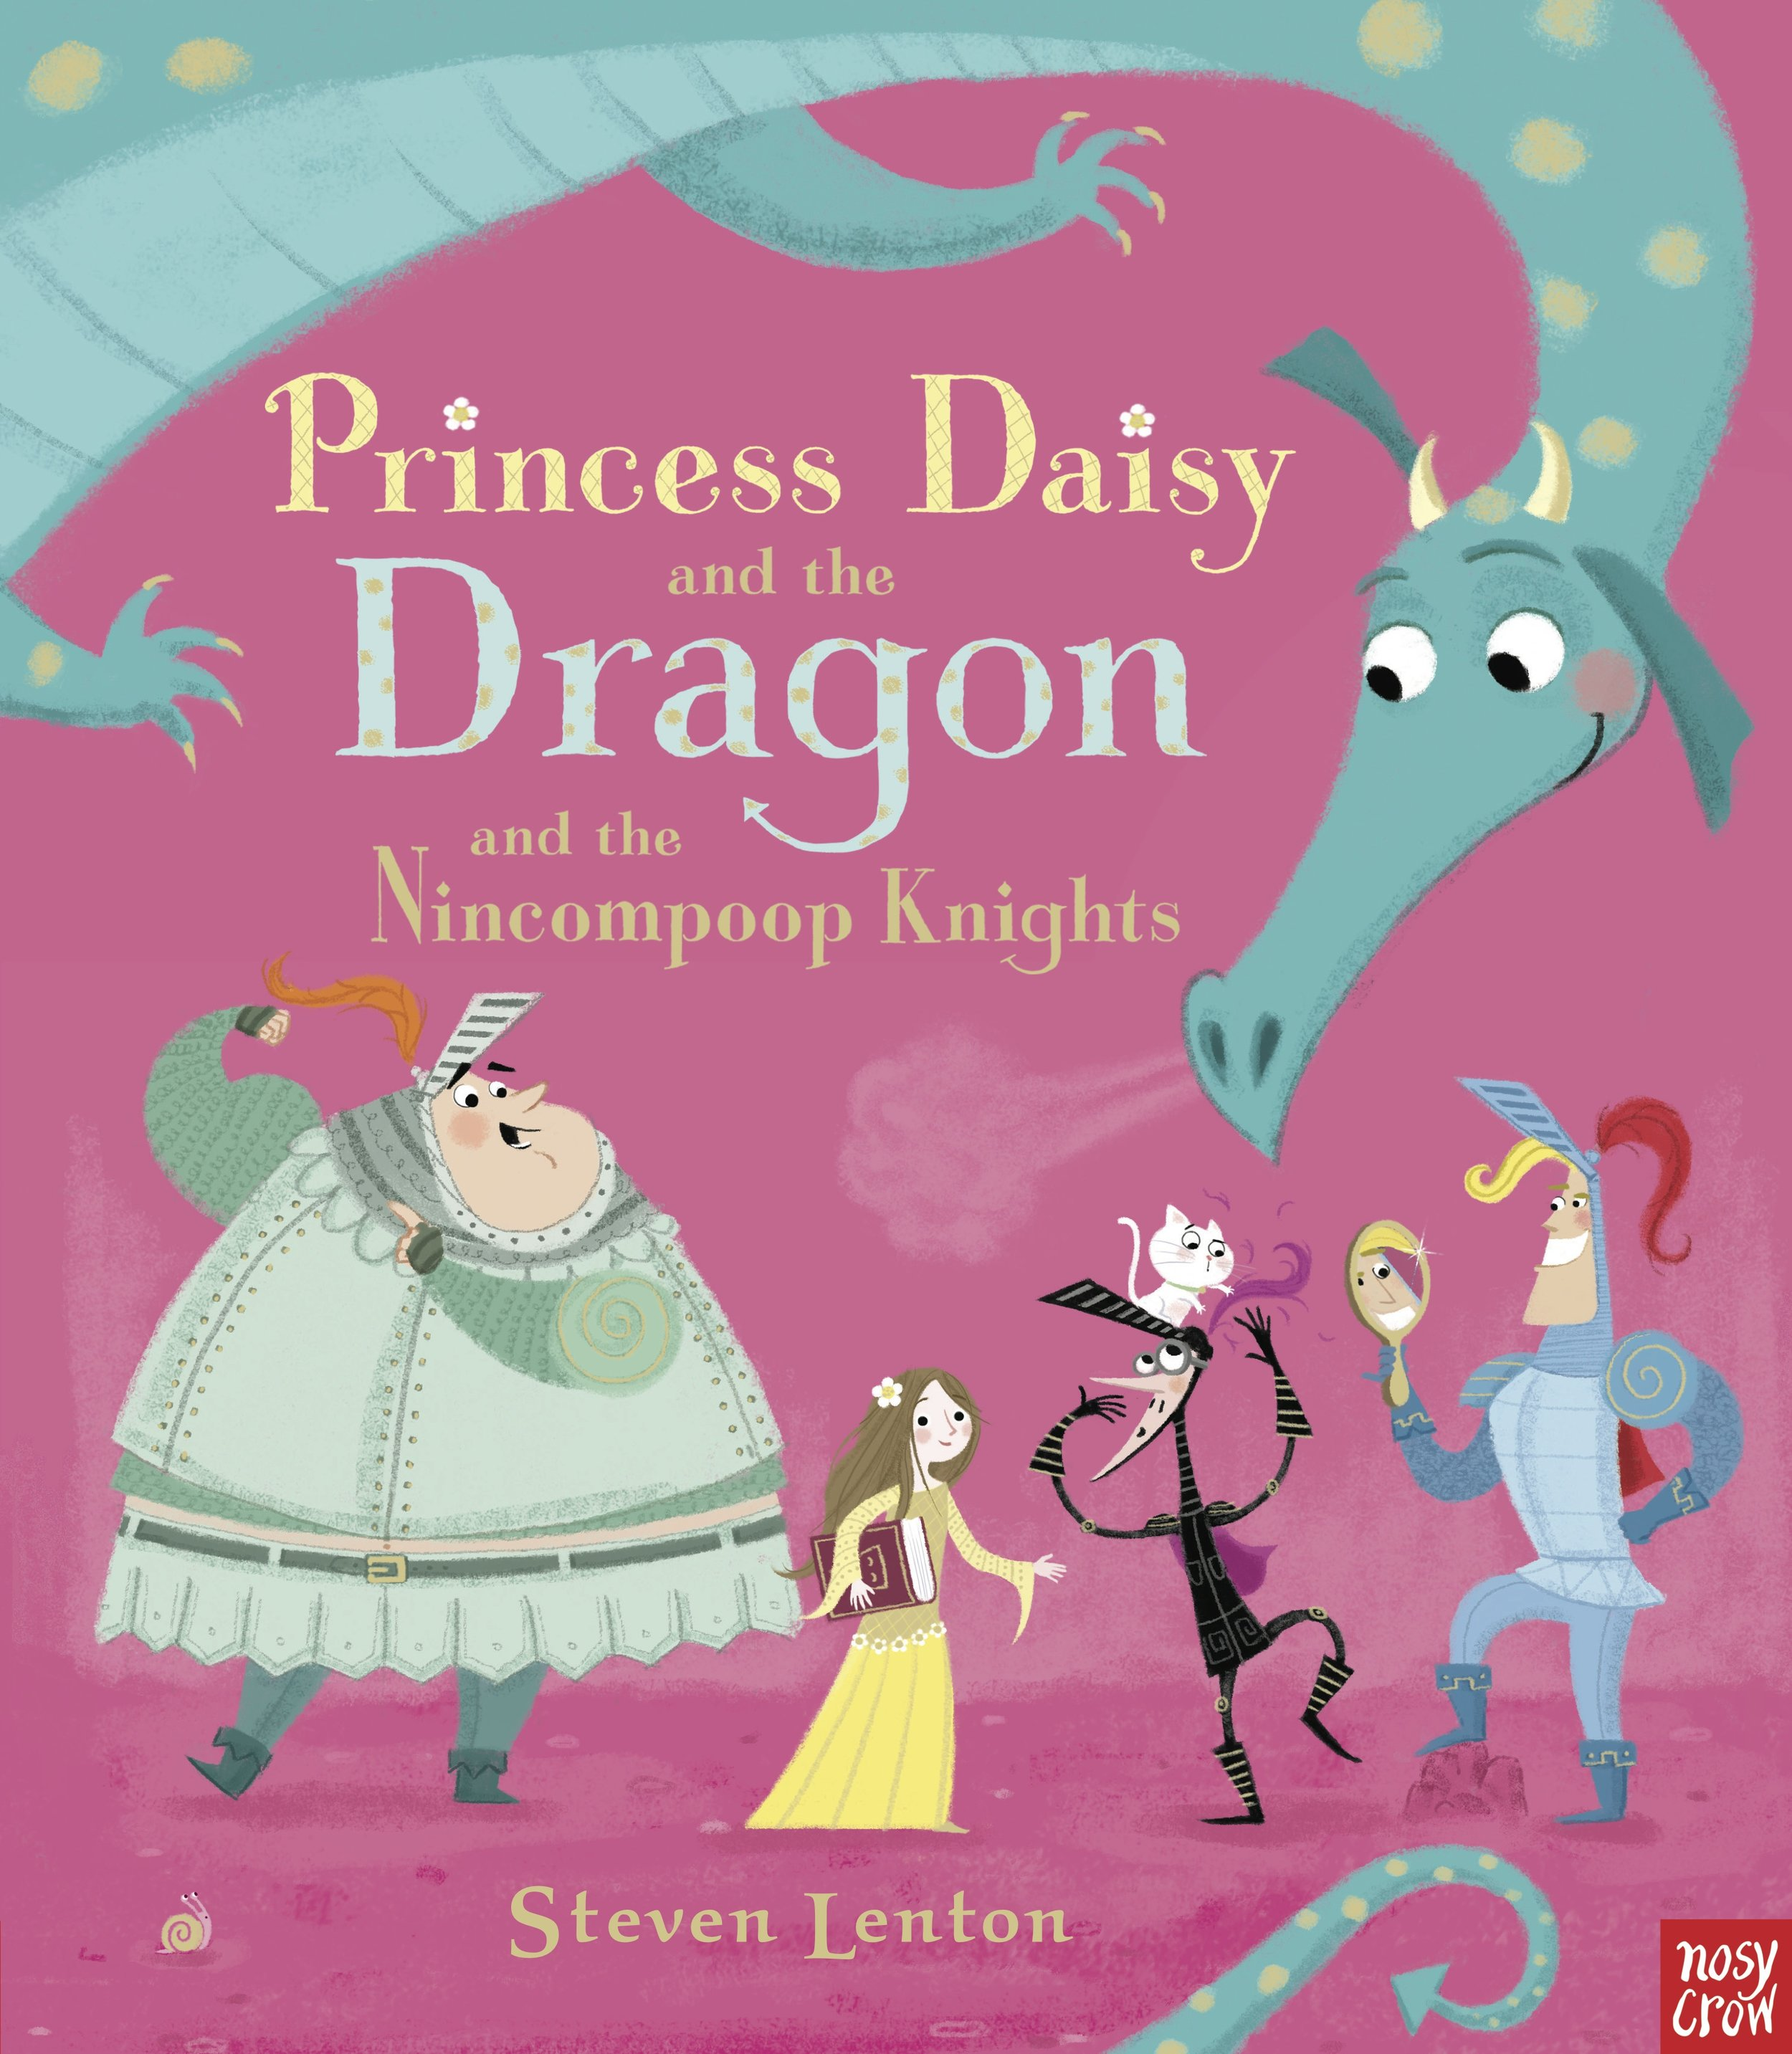 Princess-Daisy-and-the-Dragon-and-the-Nincompoop-Knights-13487-1.jpg